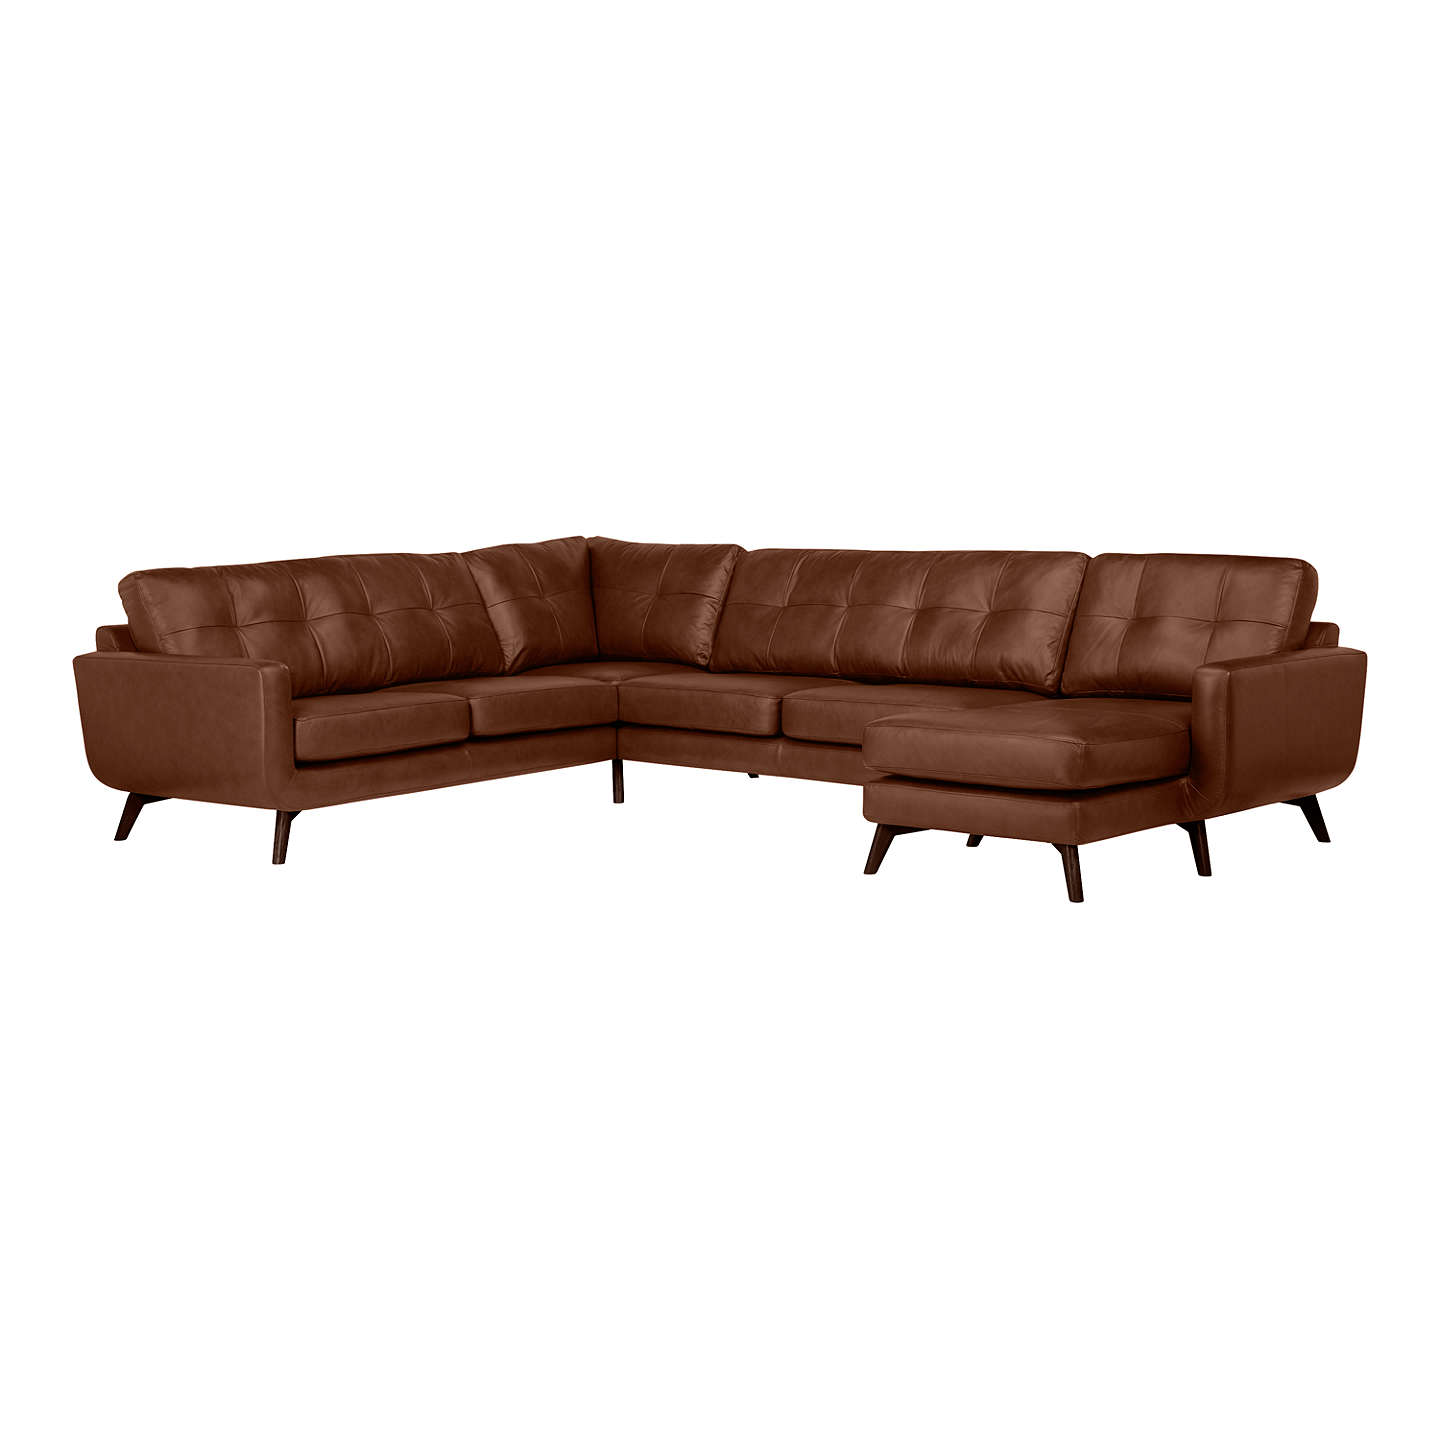 BuyJohn Lewis Barbican Leather RHF Grand Corner Chaise End Sofa, Dark Leg, Contempo Castanga Online at johnlewis.com